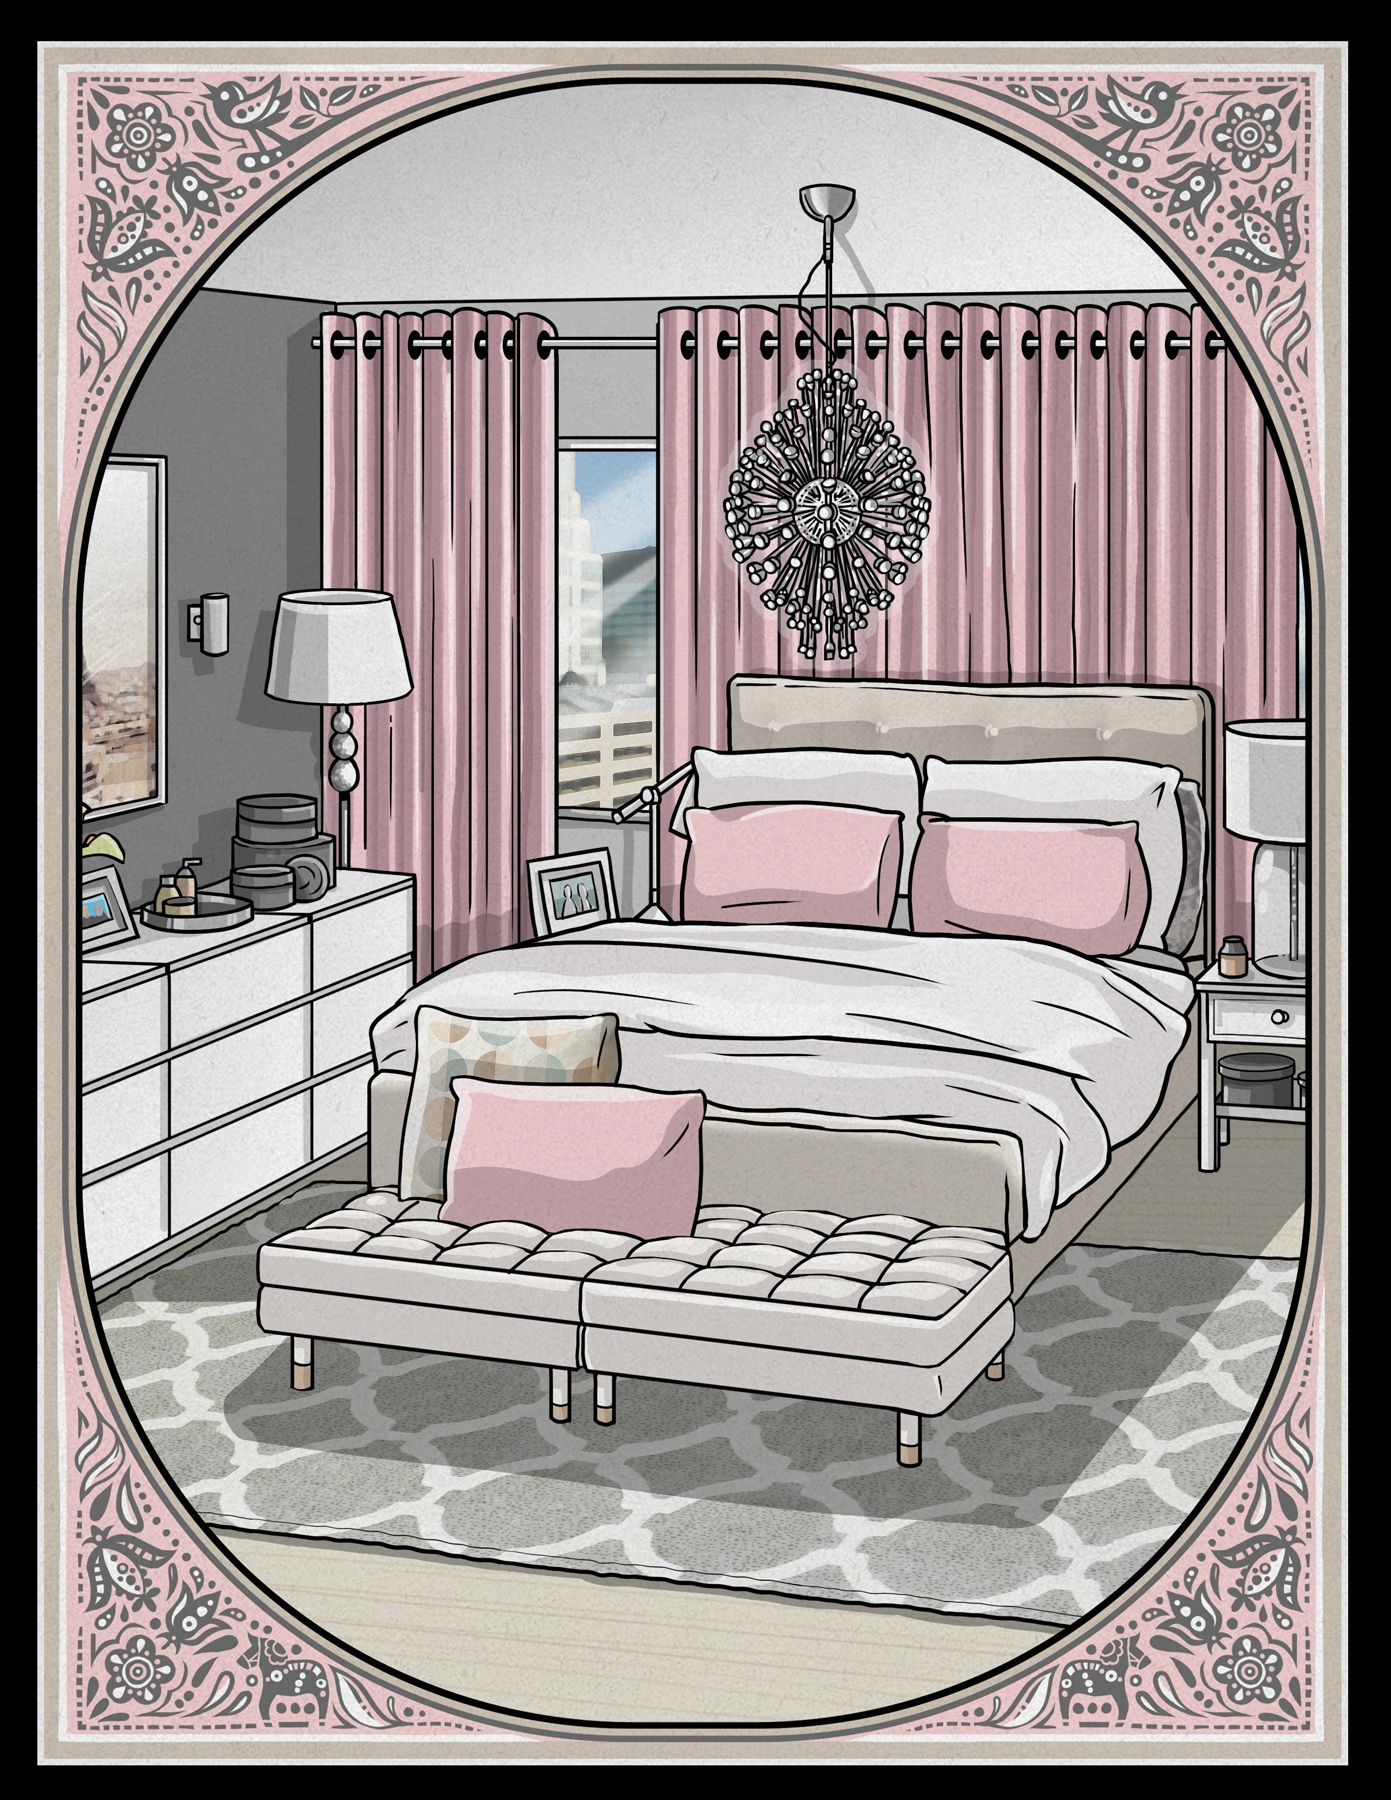 Ikea Kama Sutra Bedroom Ideas   The Personal Blush